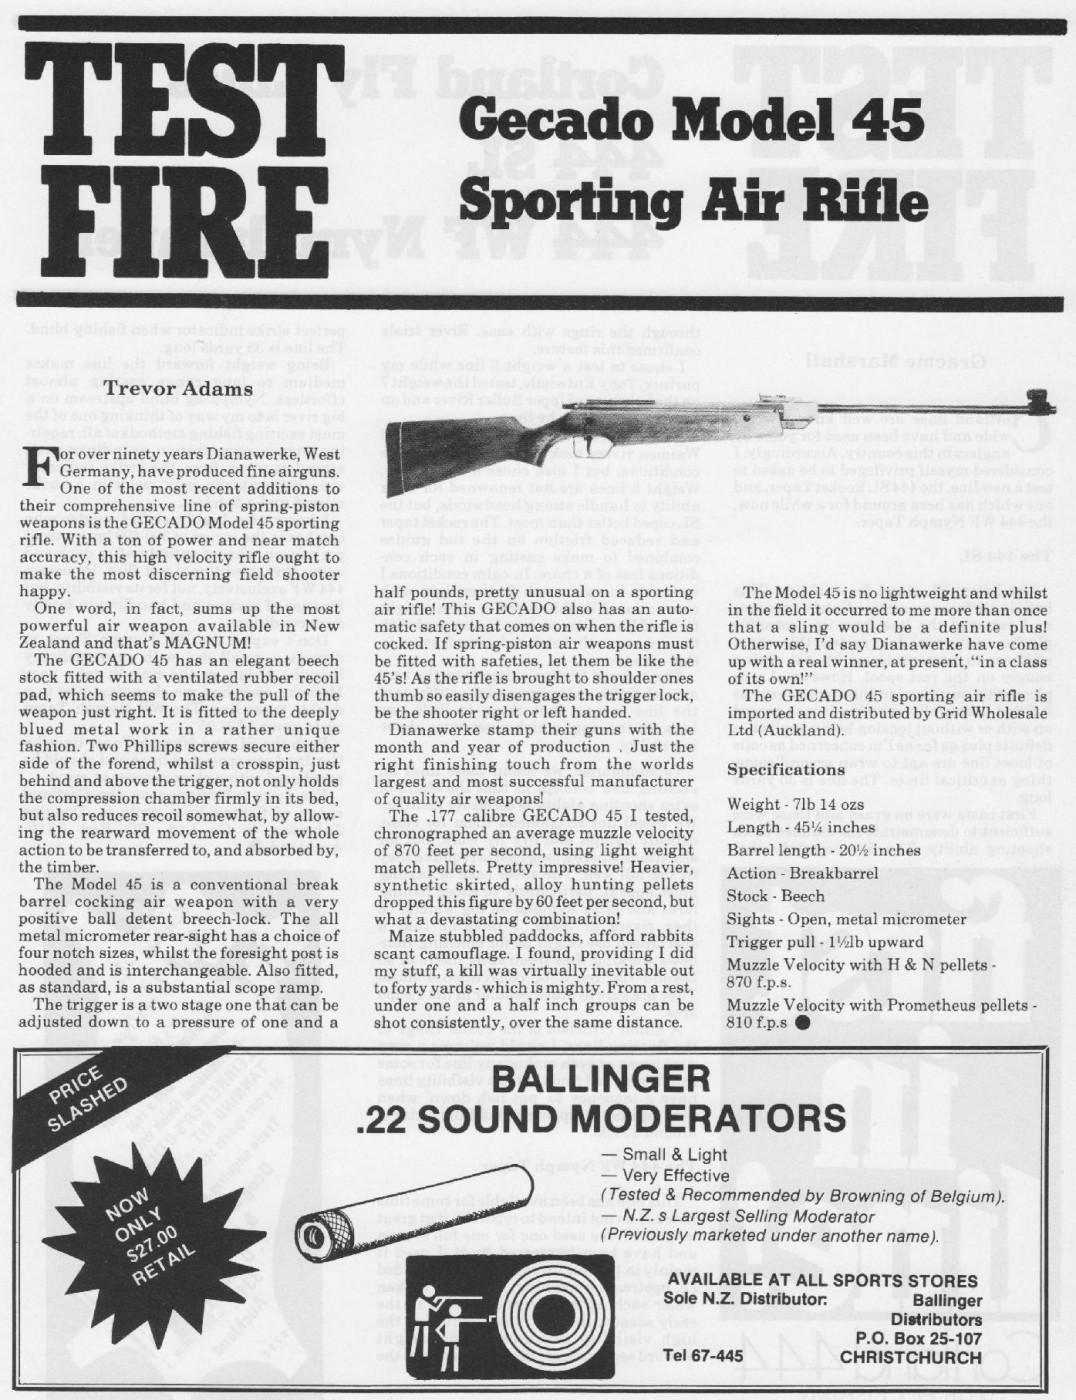 Gecado (Diana) 45 | Adams, Trevor – Vintage Airgun Articles